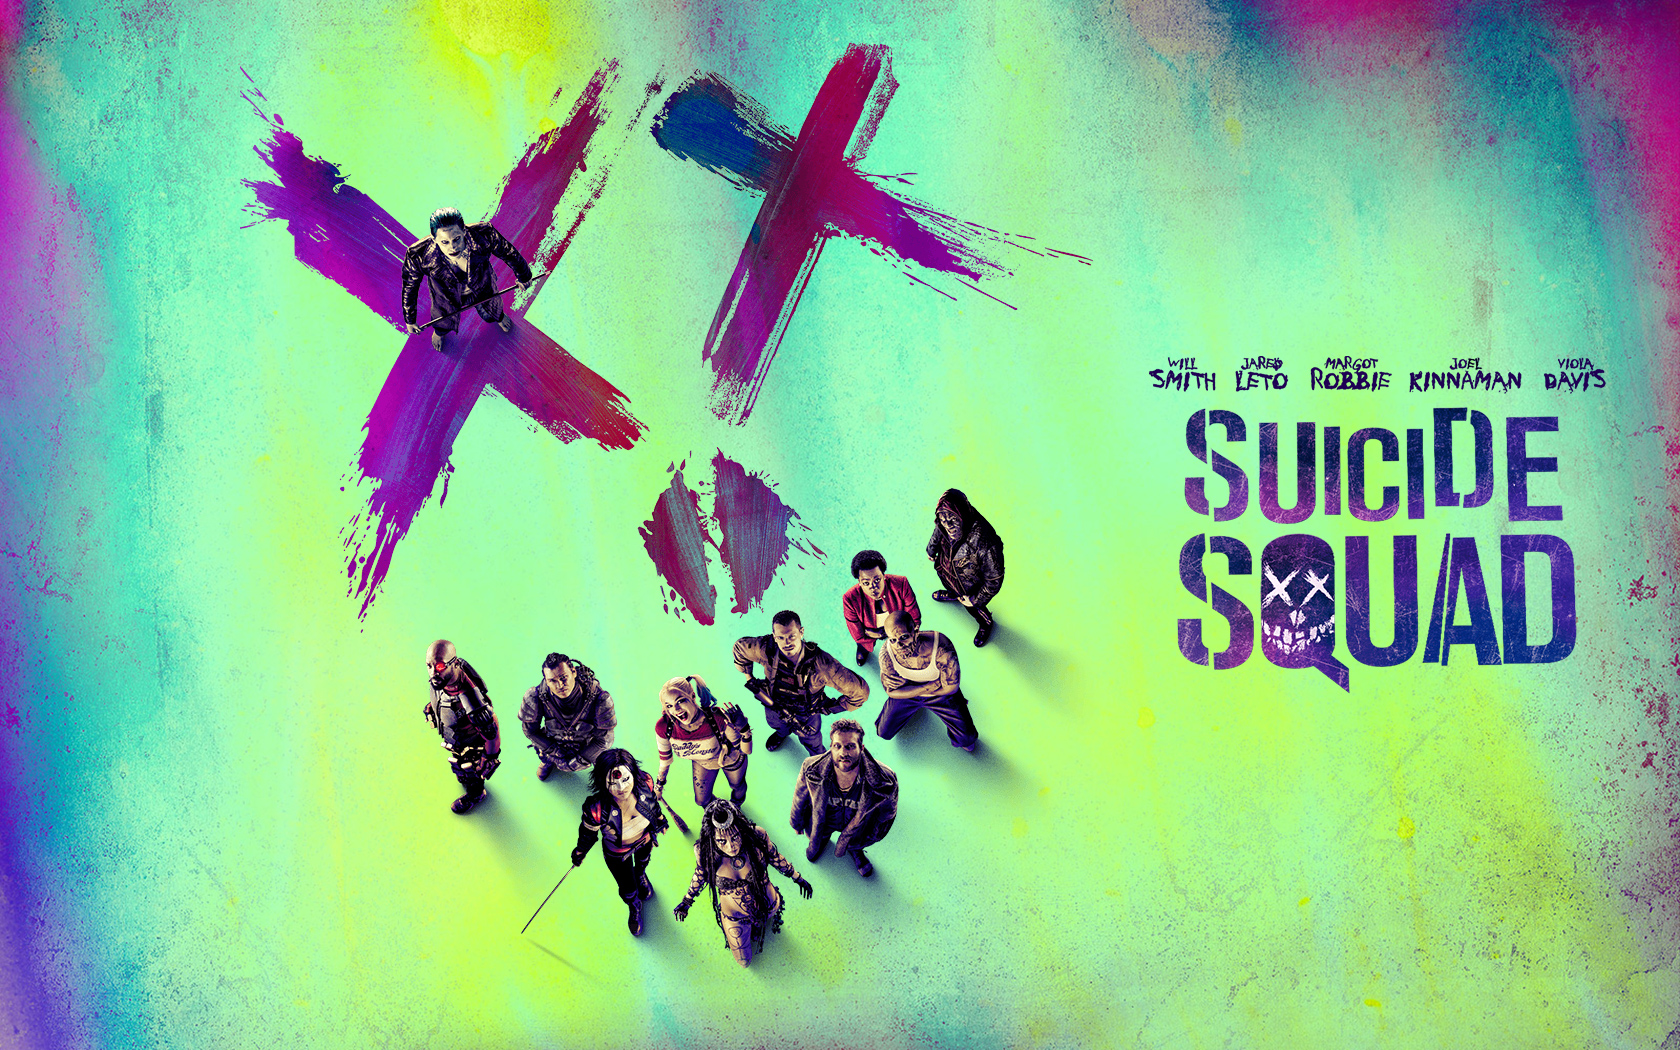 Suicide Squad first official trailer new poster and a wallpaper 1680x1050